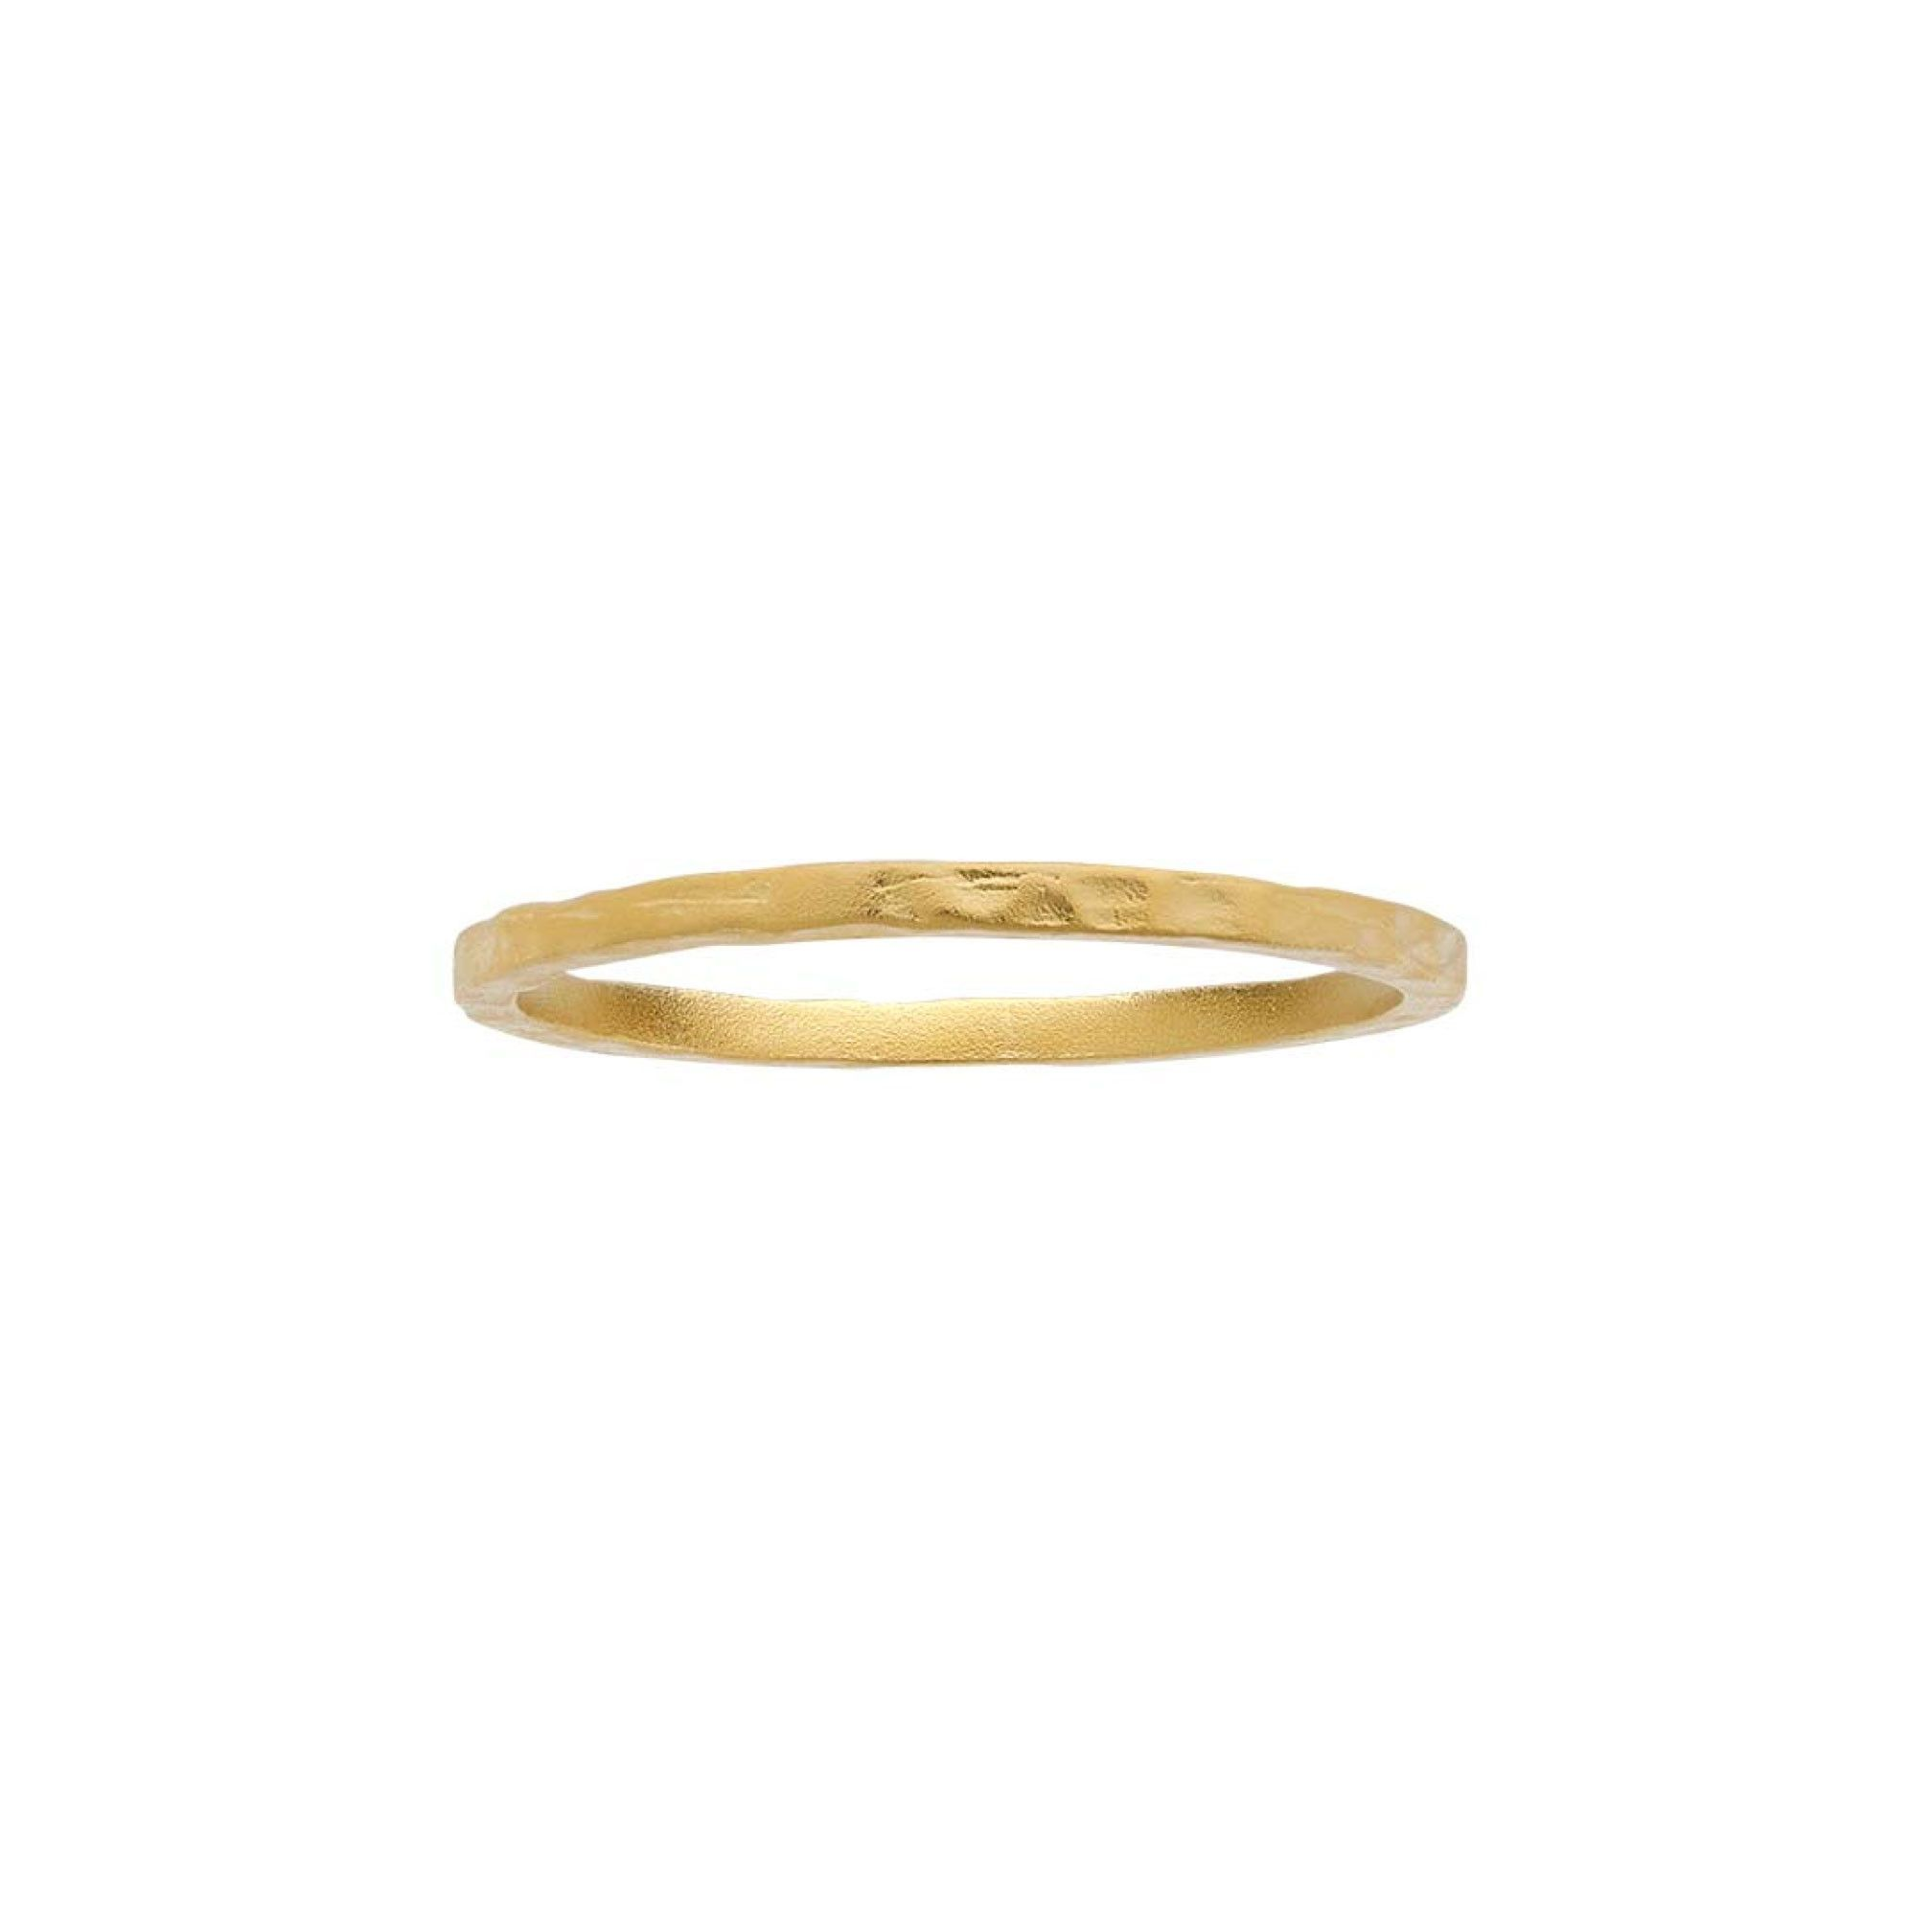 Satin hammered finish stacking ring satin products and stacking rings